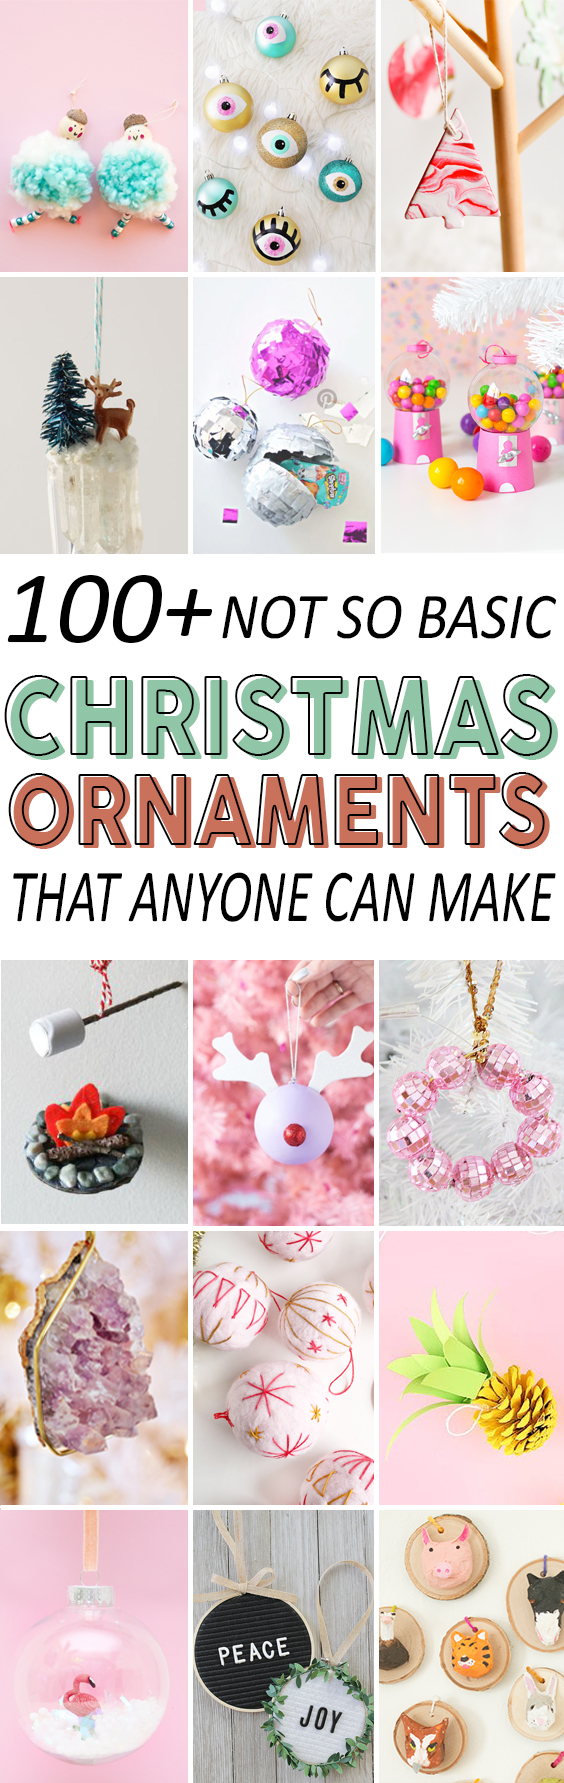 100+ Christmas Ornament DIY Tutorials Anyone can Make